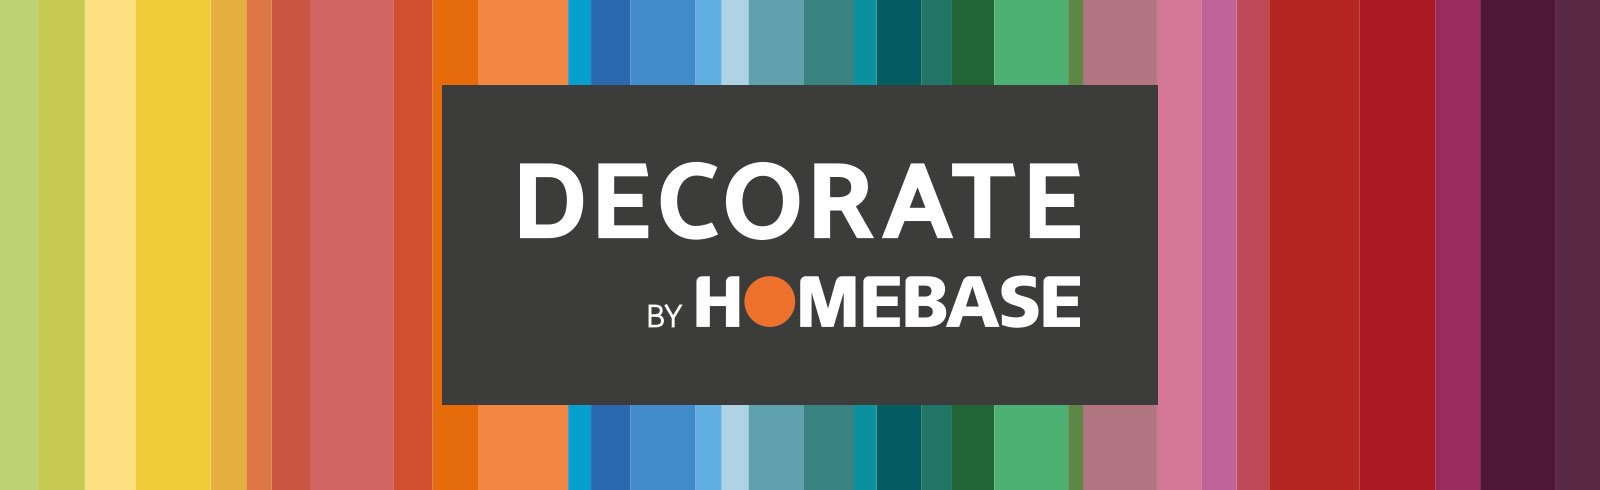 Decorate by homebase.